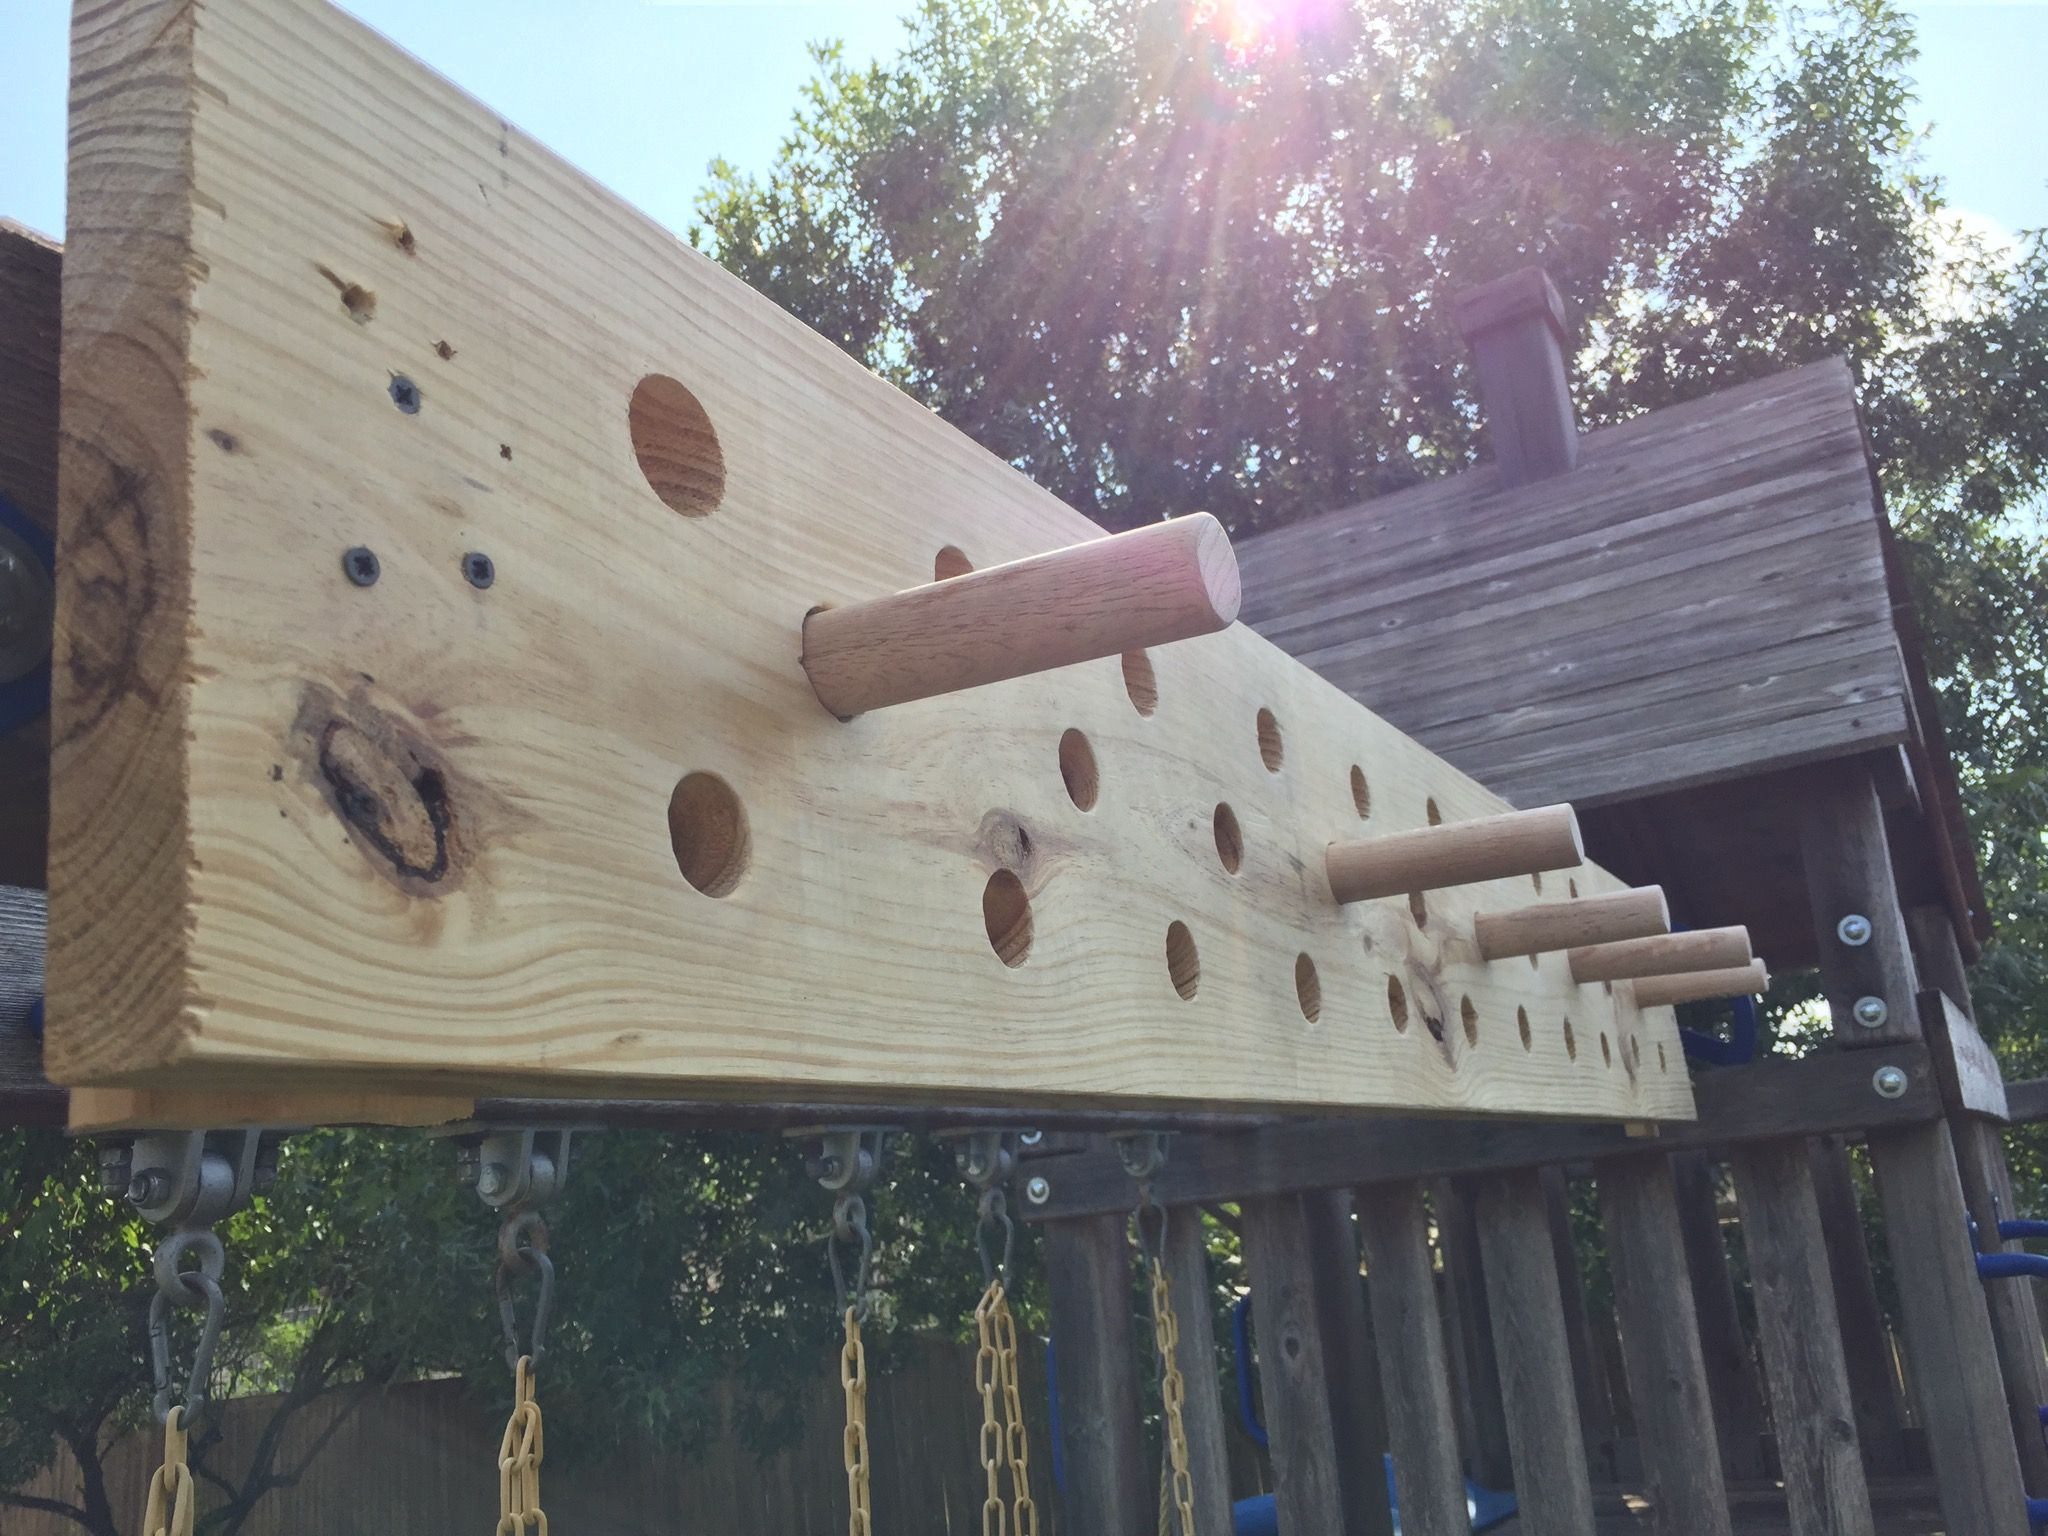 i wanted to make a diy pegboard like tony horton and american